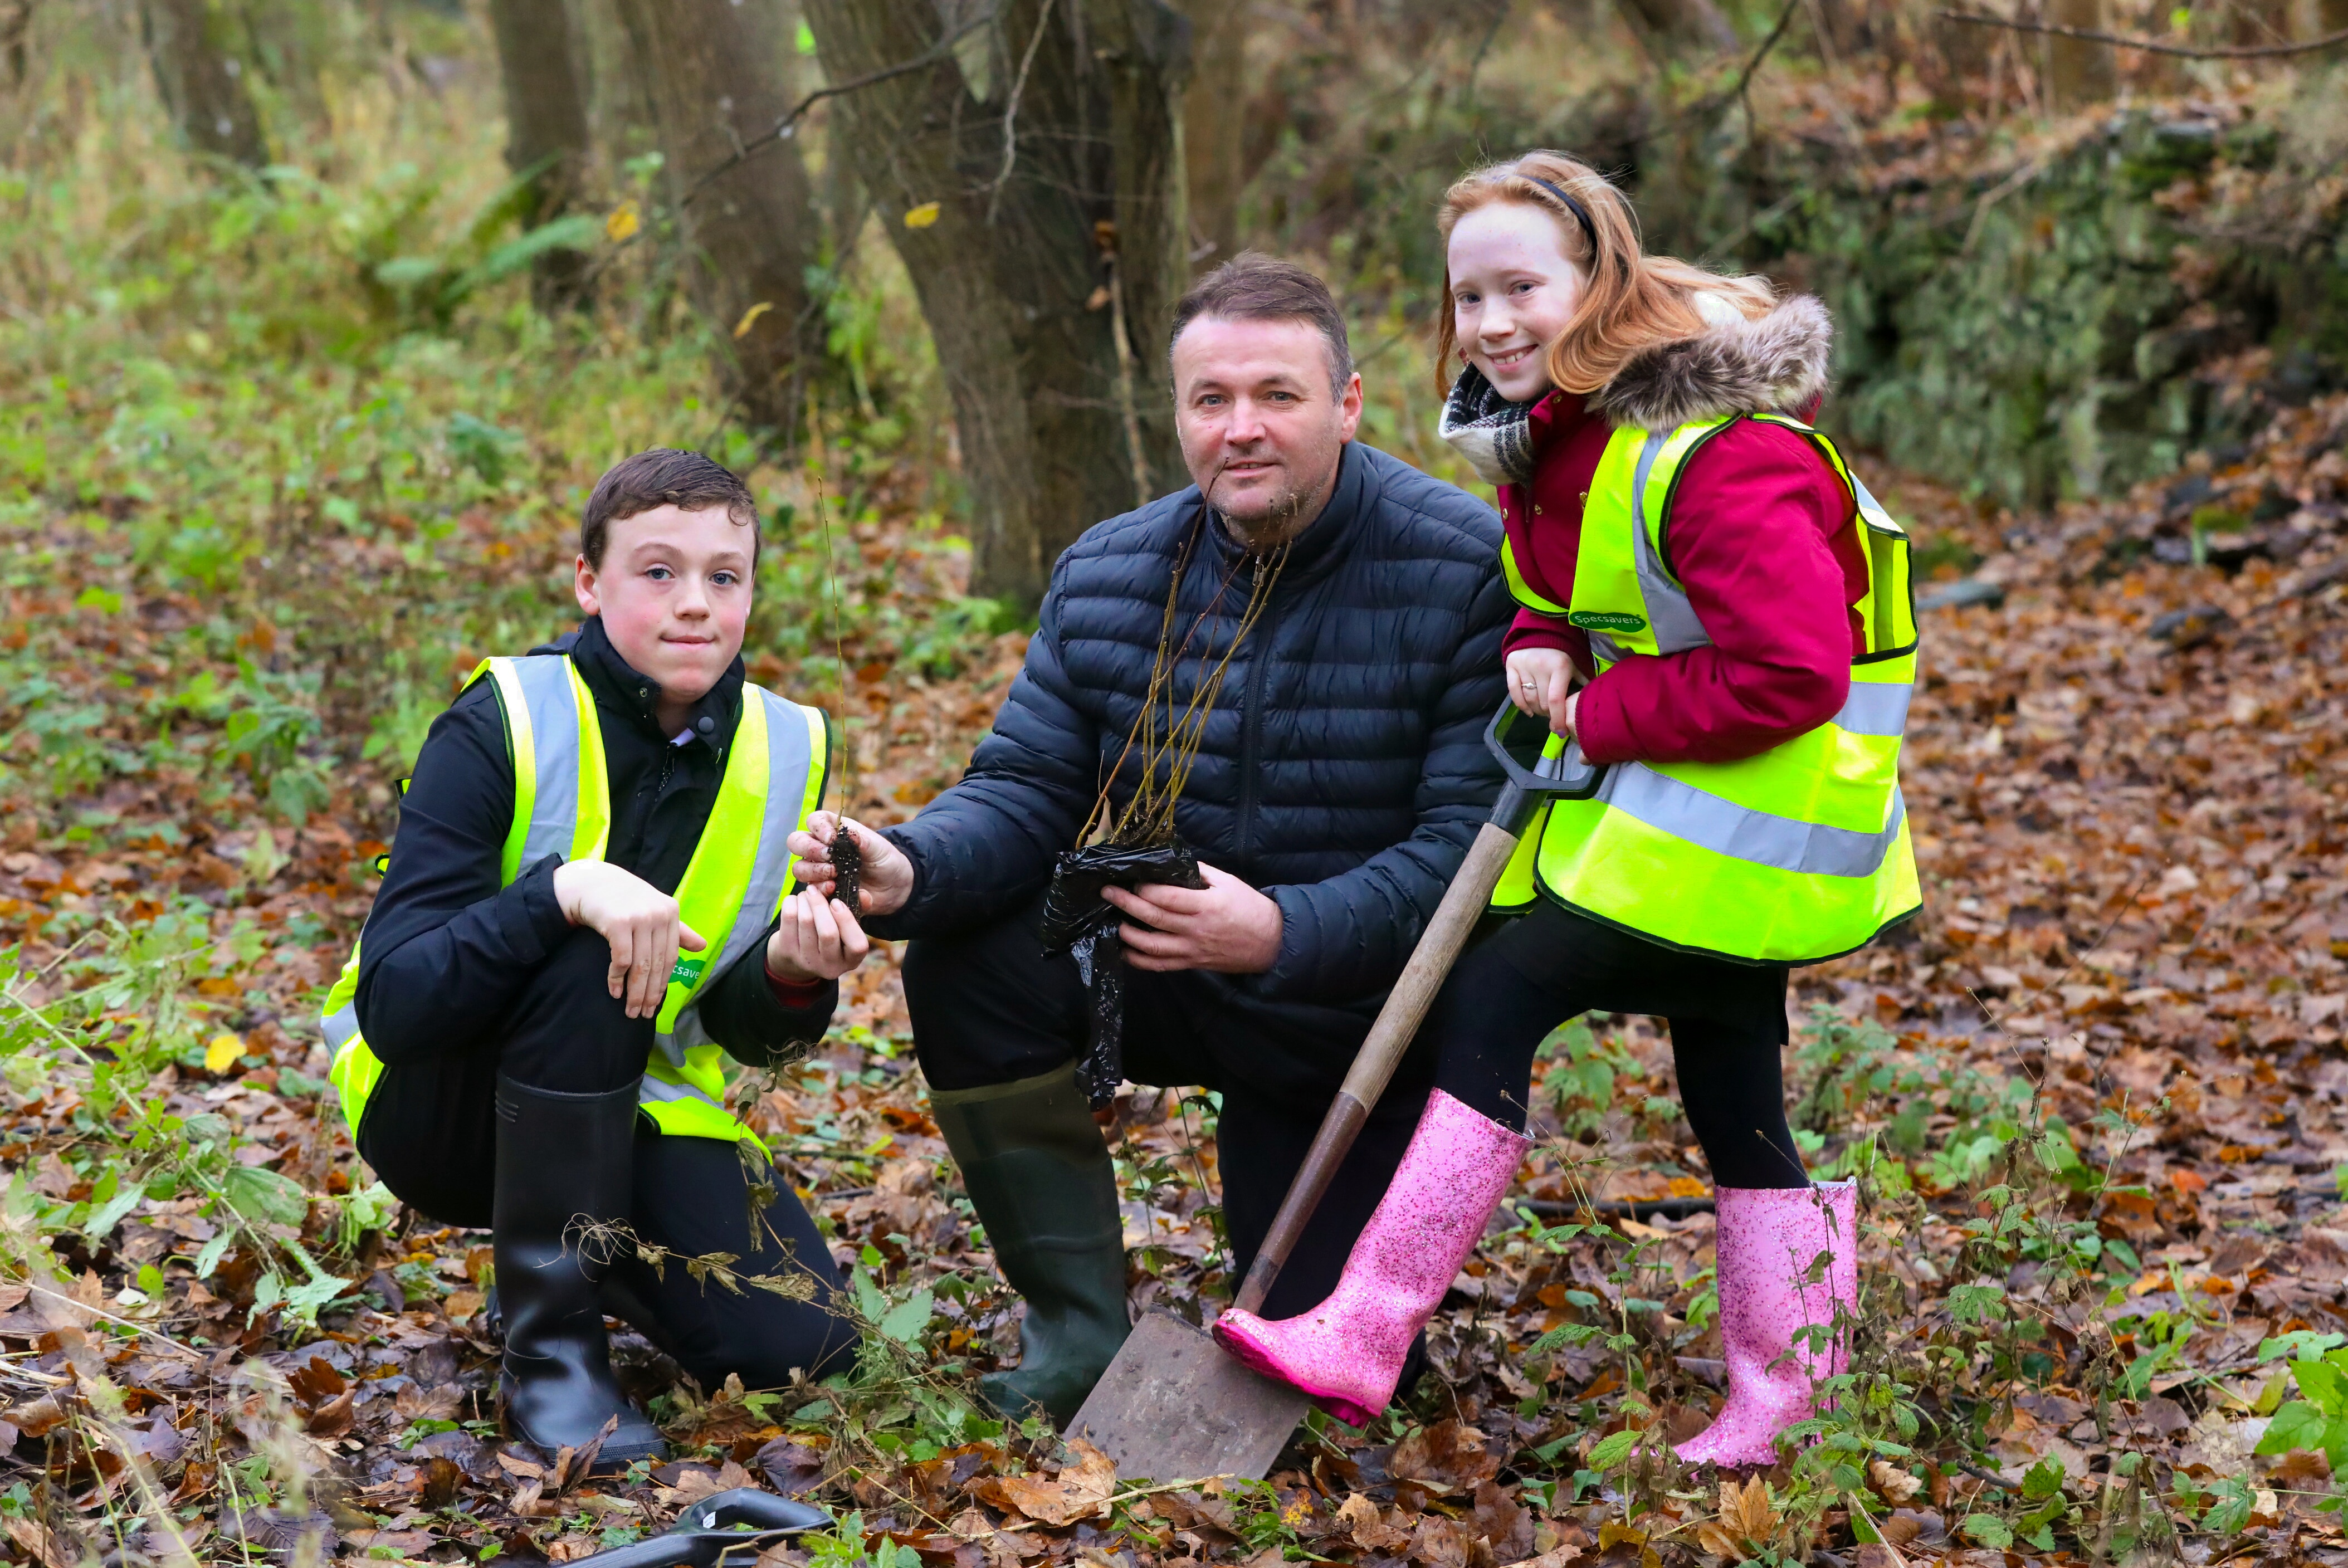 """Ralf Coutts of the """"St Vigeans Conservation Network"""" gets some help from Nathan McCormack and Norijane Forbes (both 11) from Warddykes primary school, to plant some young trees in part of the Millenium Forrest at St Vigeans."""